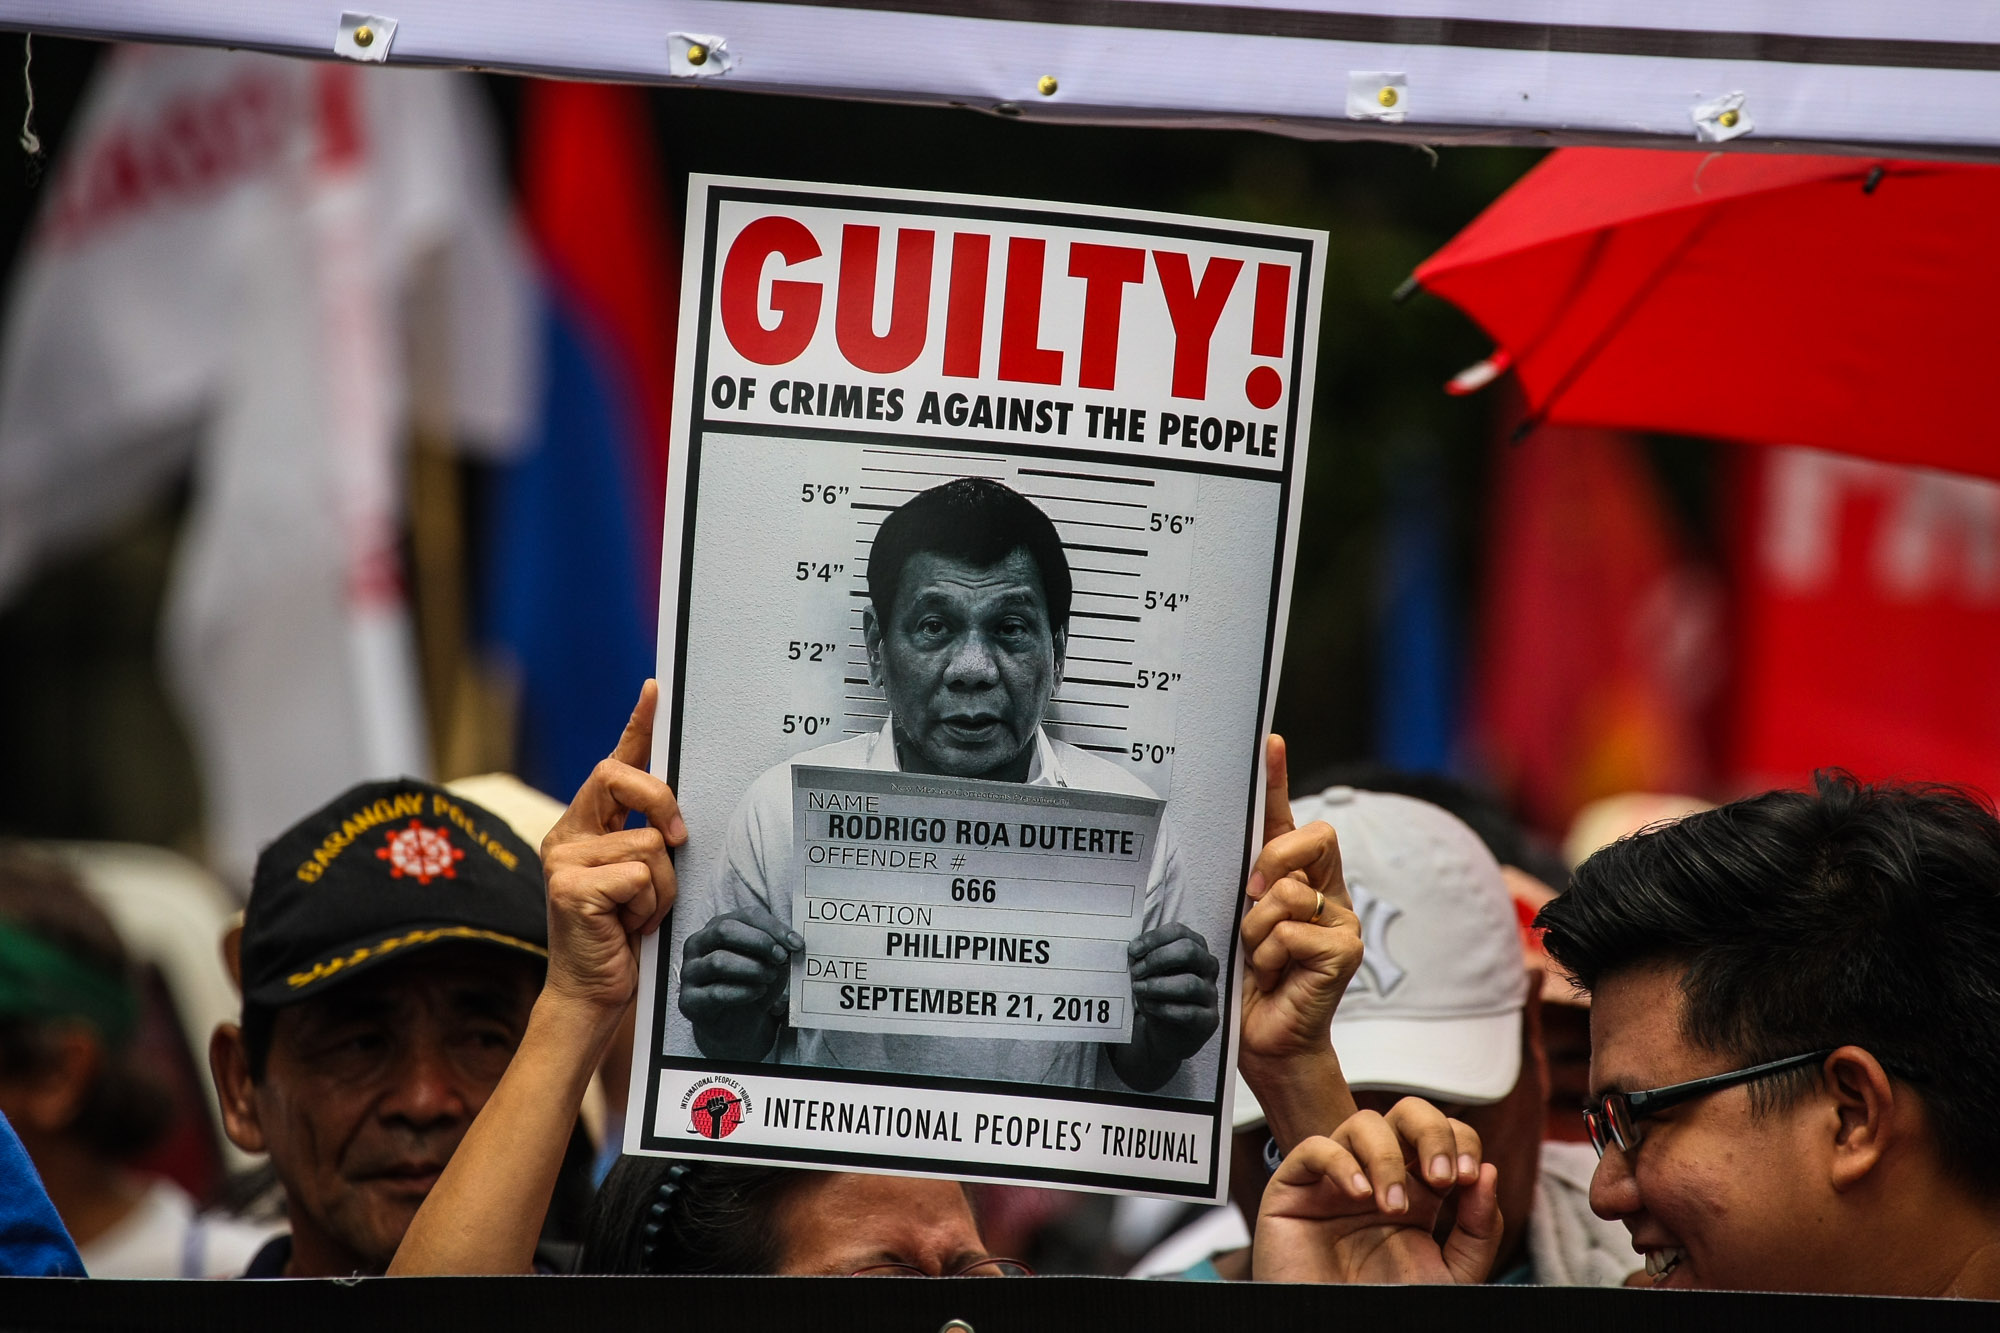 GUILTY VERDICT. For the Martial Law anniversary on September 21, 2018, activist groups carry a photo of President Rodrigo Duterte, whom the International People's Tribunal recently declared guilty of crimes against humanity. Photo by Maria Tan/Rappler